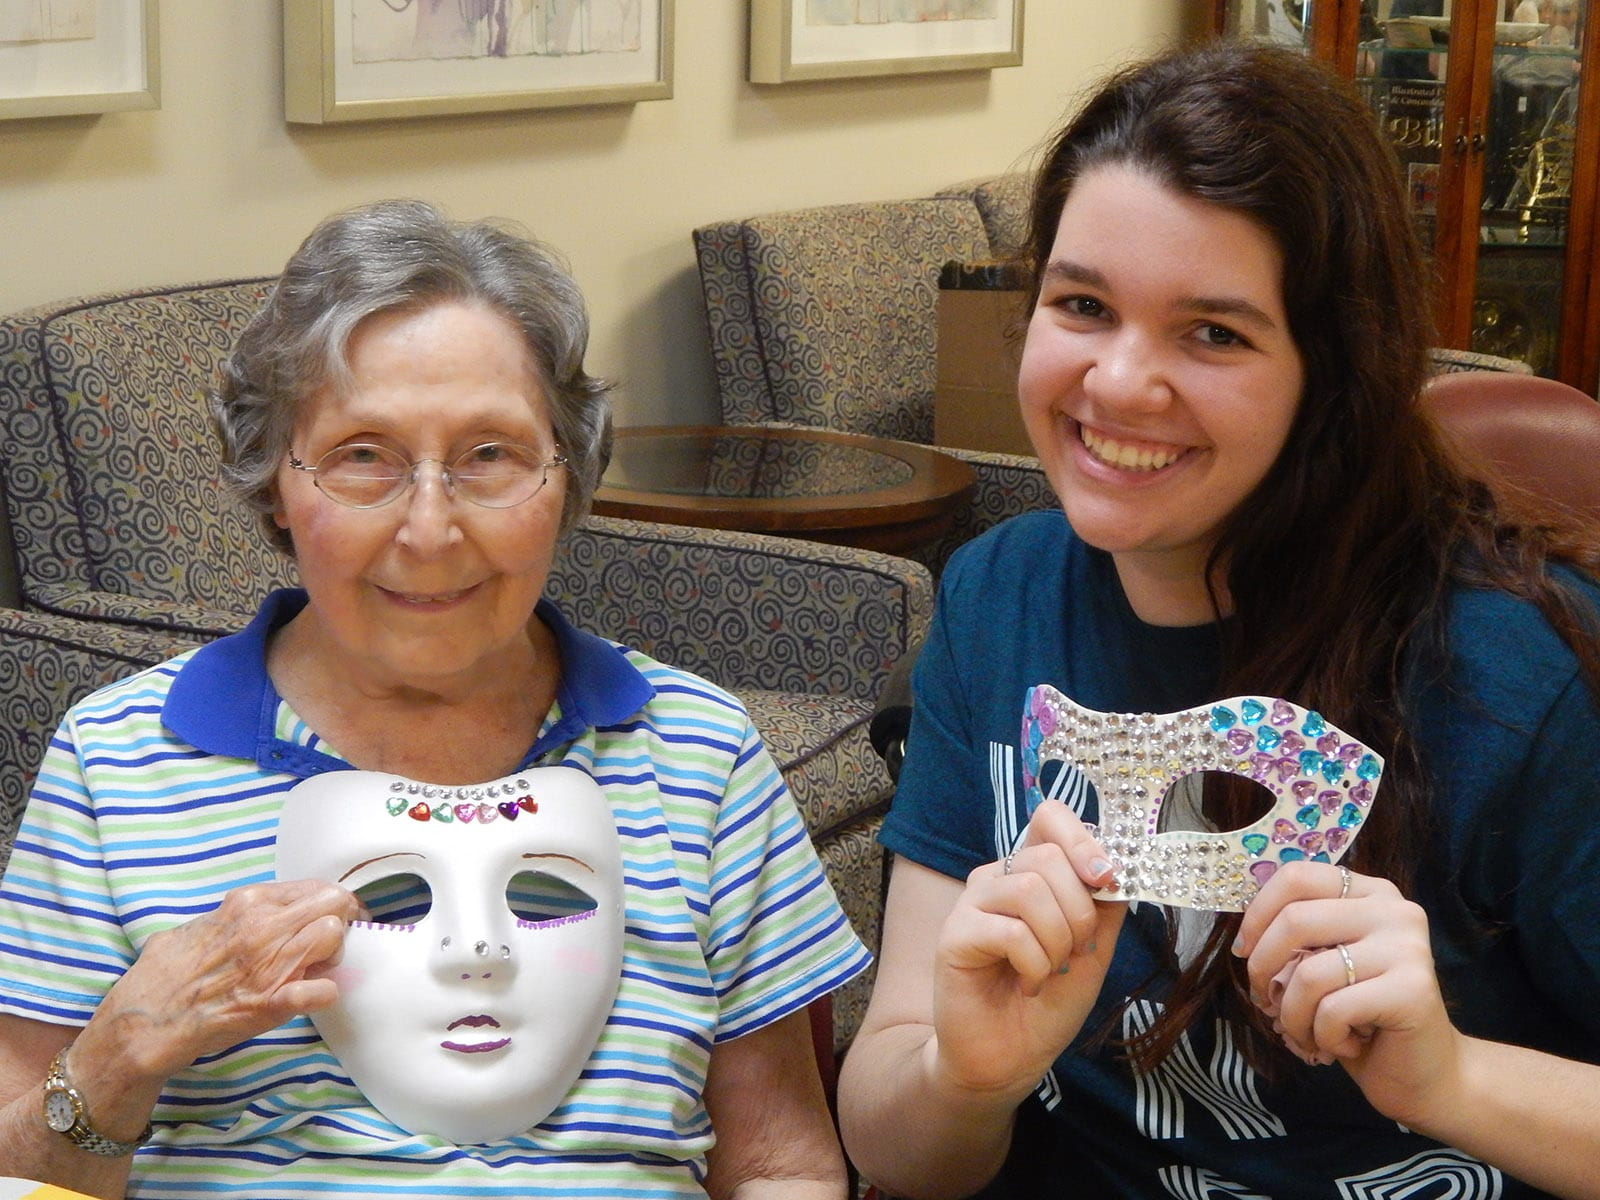 Medallion resident with student helper making Purim masks